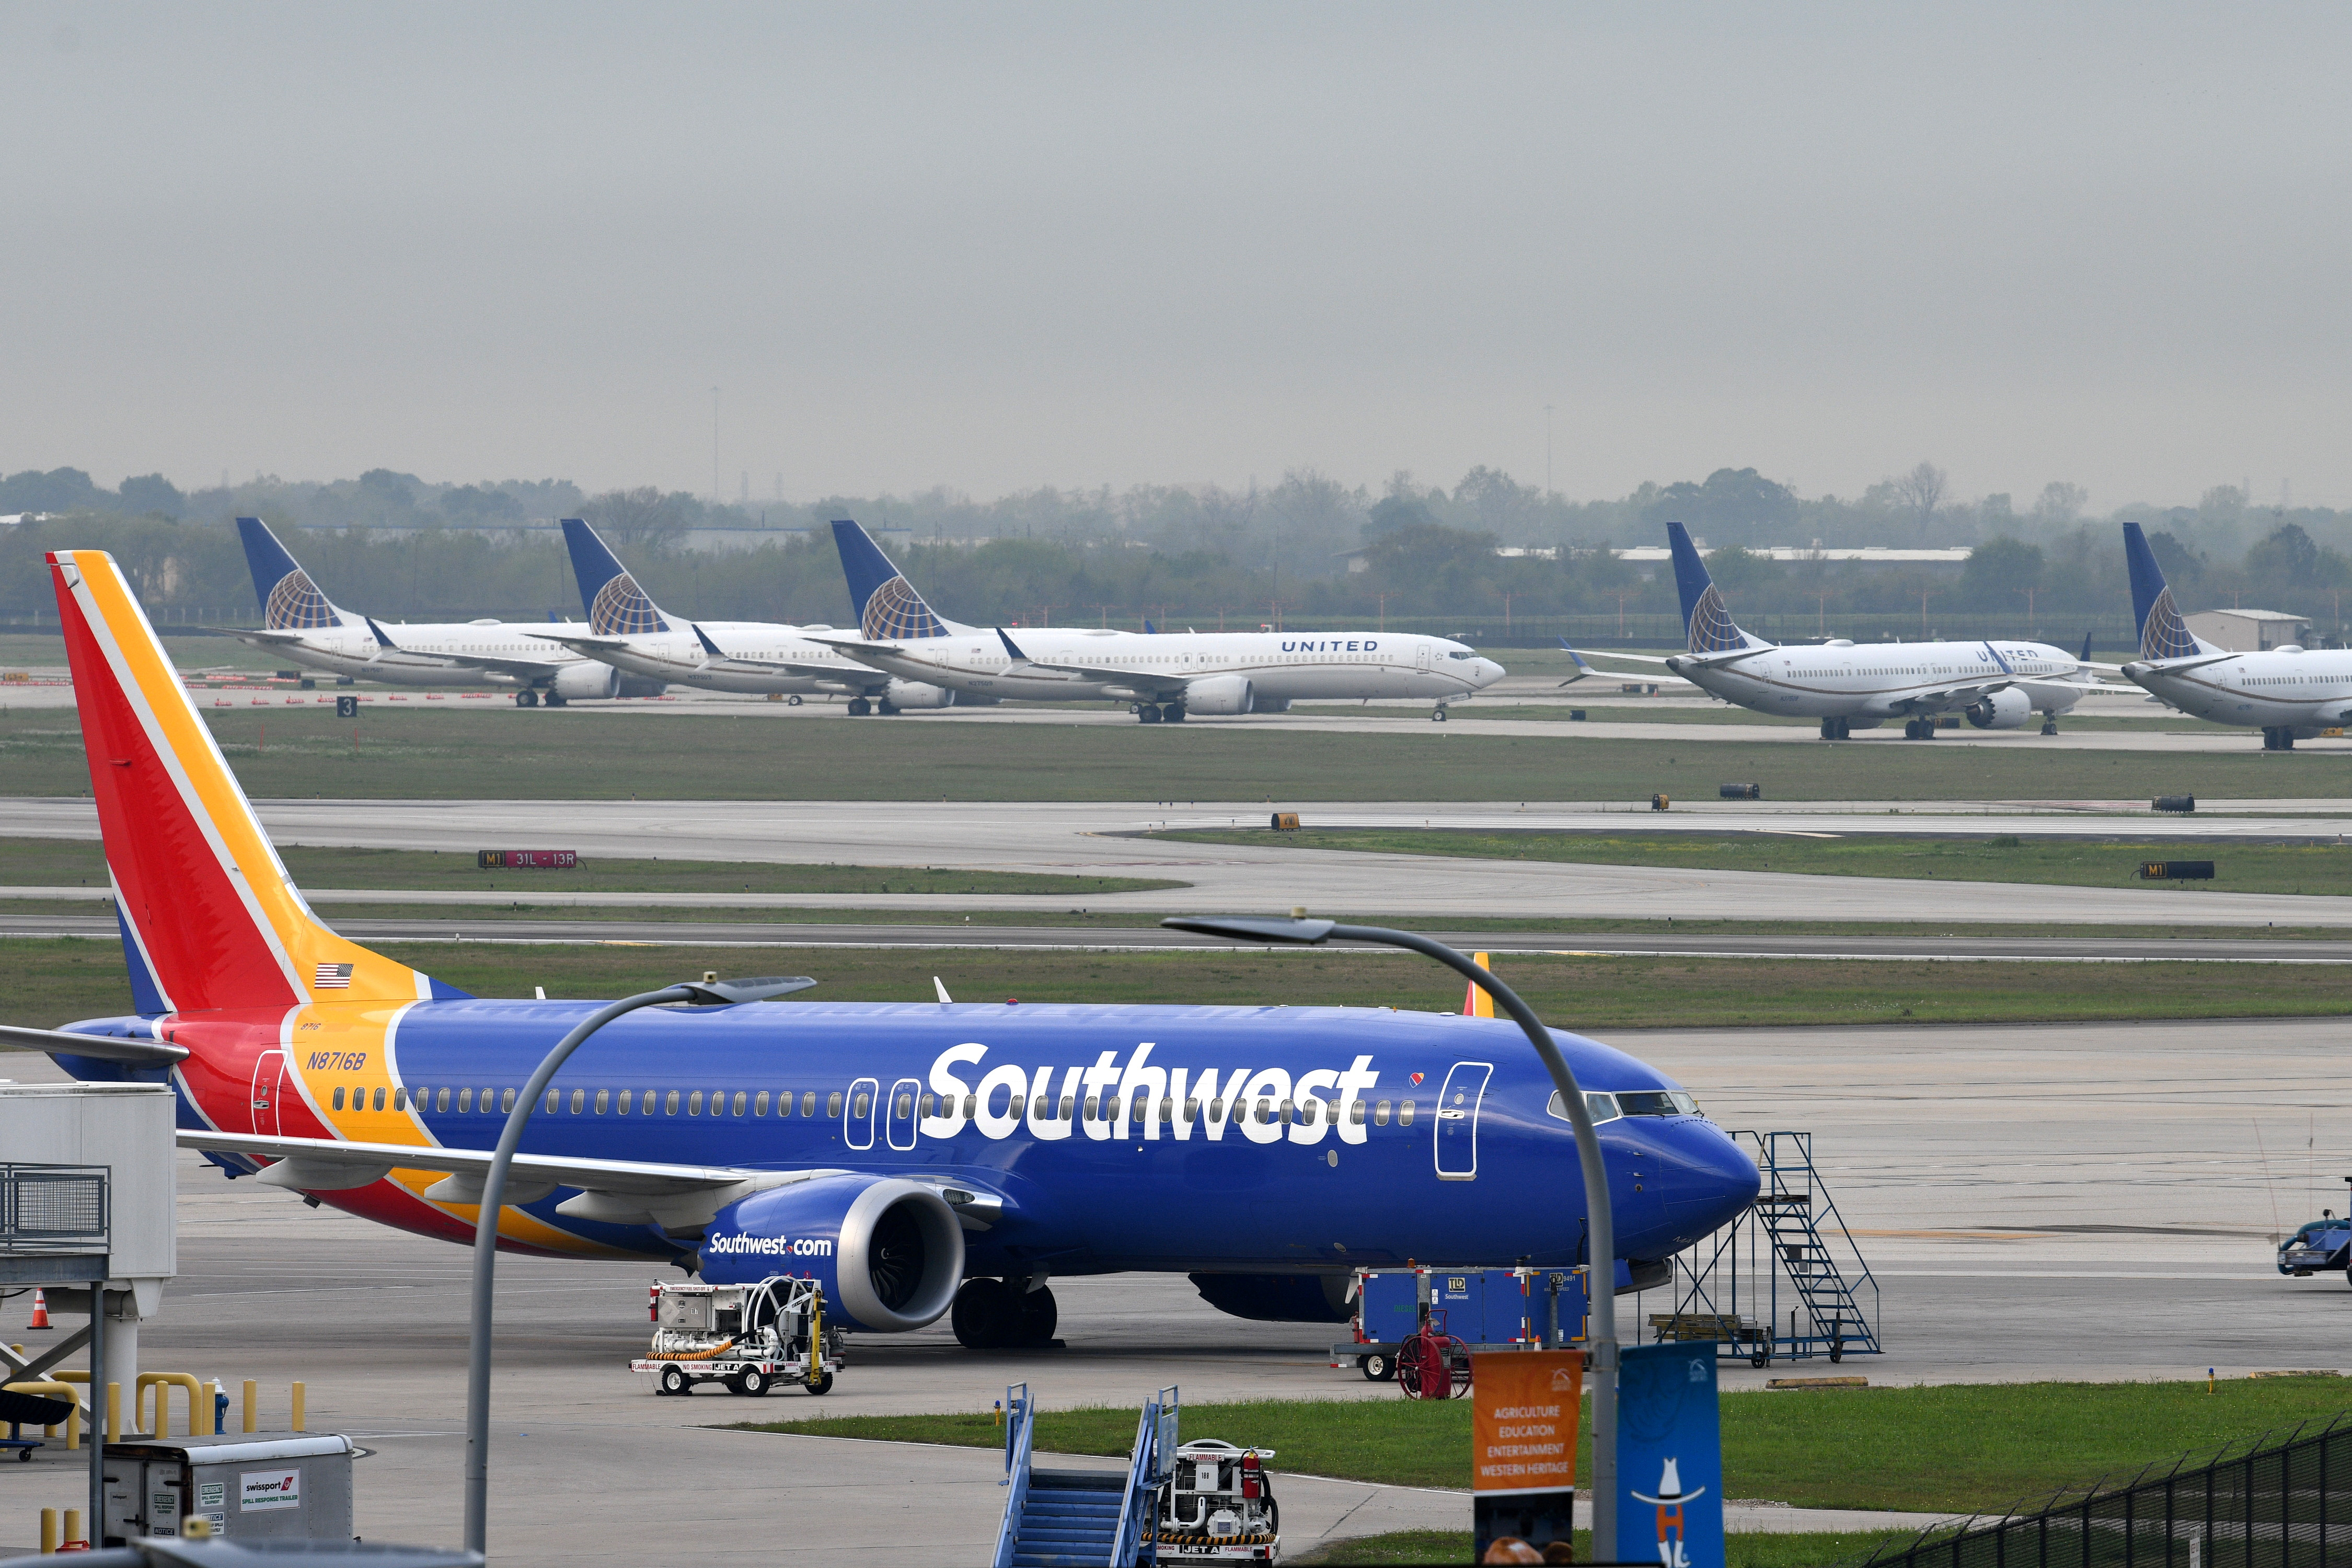 A Southwest Airlines Boeing 737 MAX 8 aircraft is pictured in front of United Airlines planes, including Boeing 737 MAX 9 models, at William P. Hobby Airport in Houston, Texas, U.S., March 18, 2019.  REUTERS/Loren Elliott/File Photo